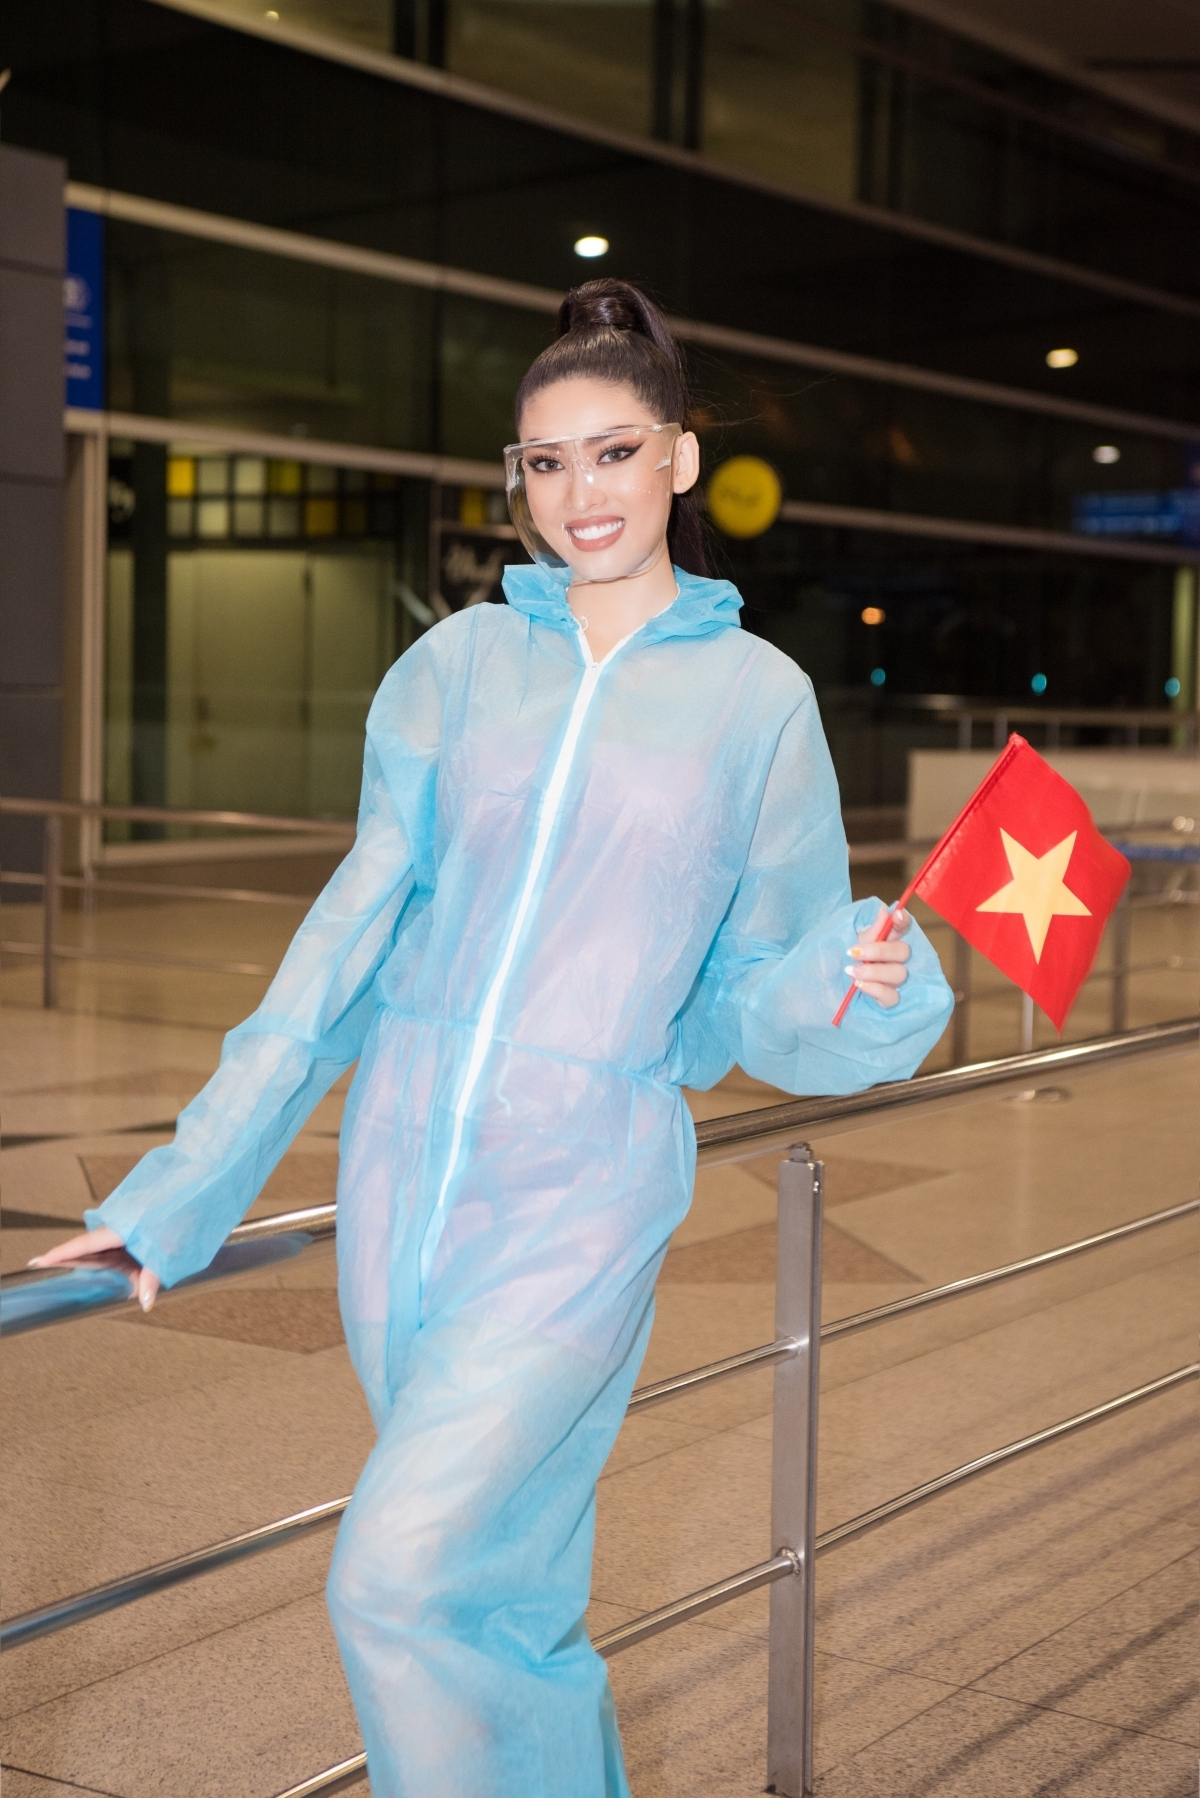 She is said to bring with her a national costume, an evening grown, alongside Vietnamese specialties.